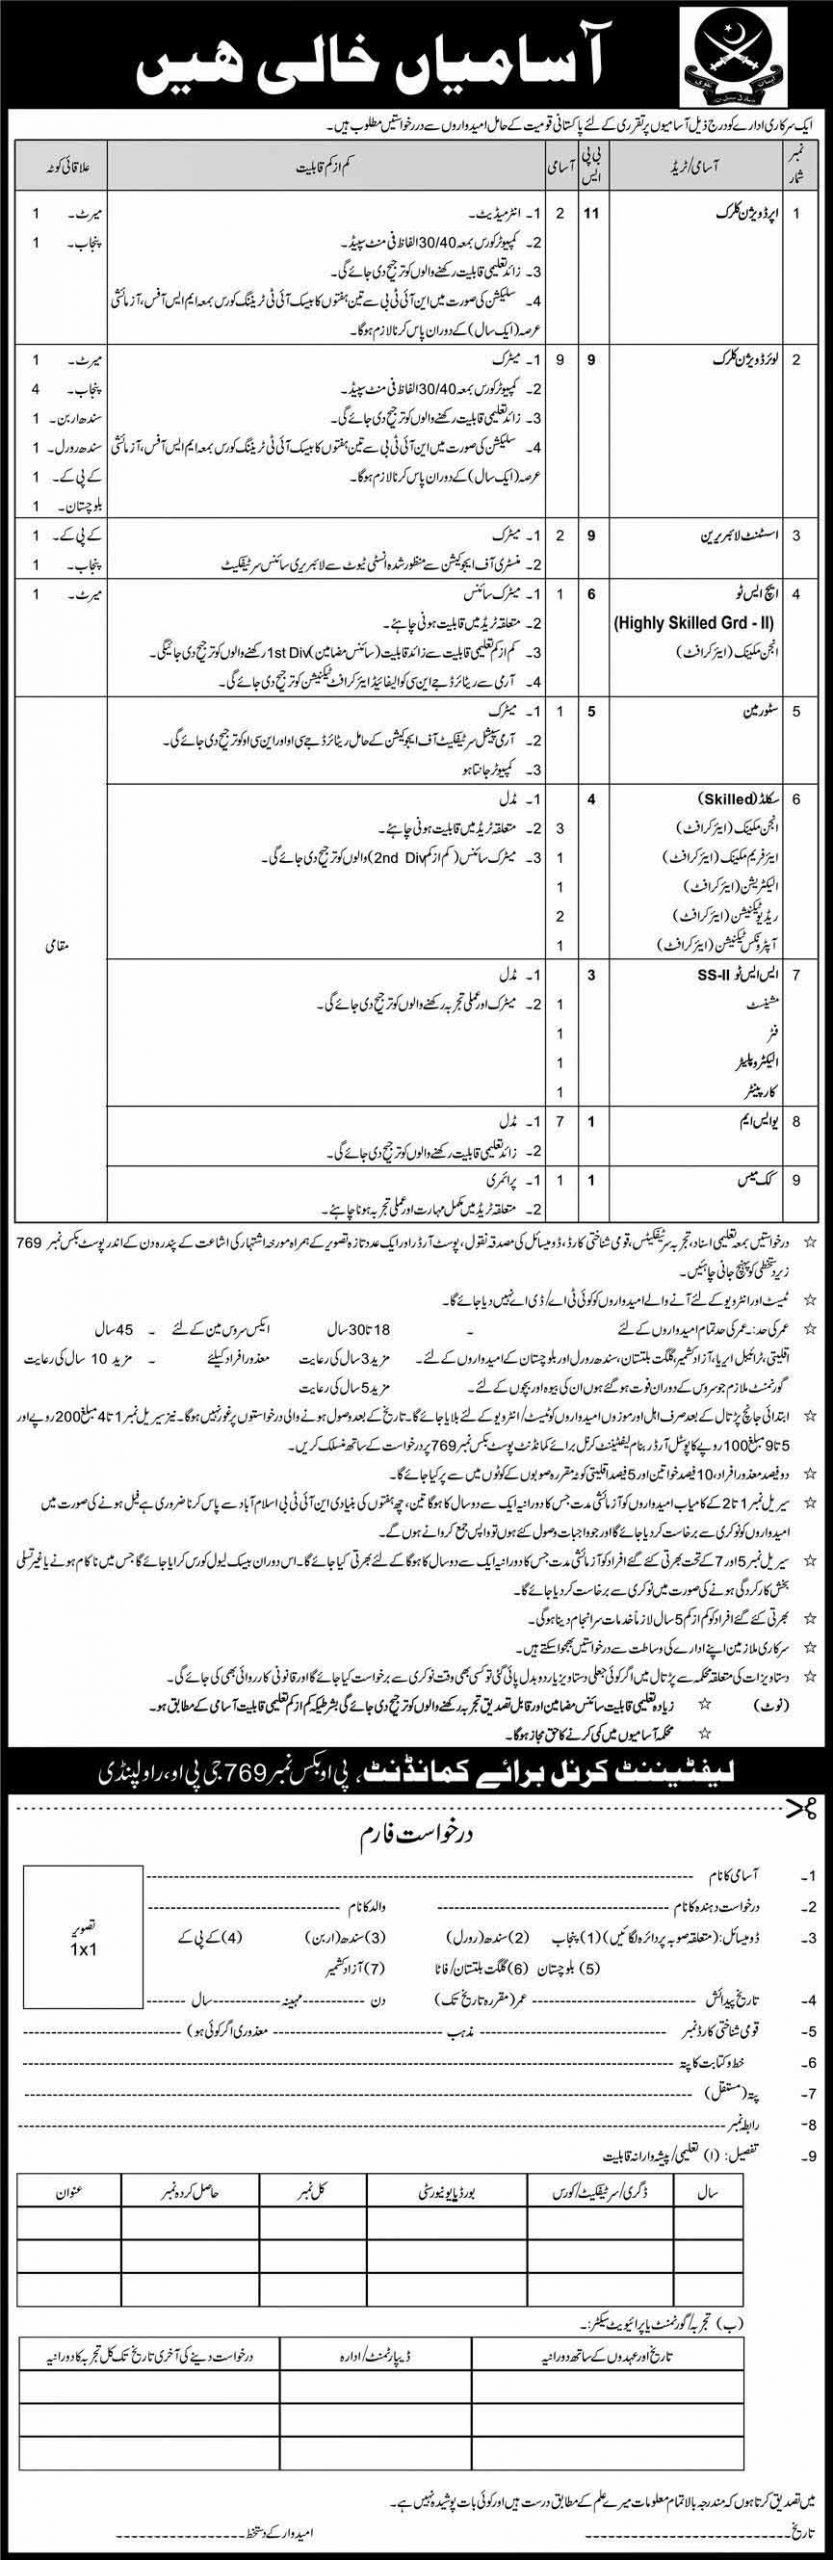 Government Sector Organization Jobs 2020